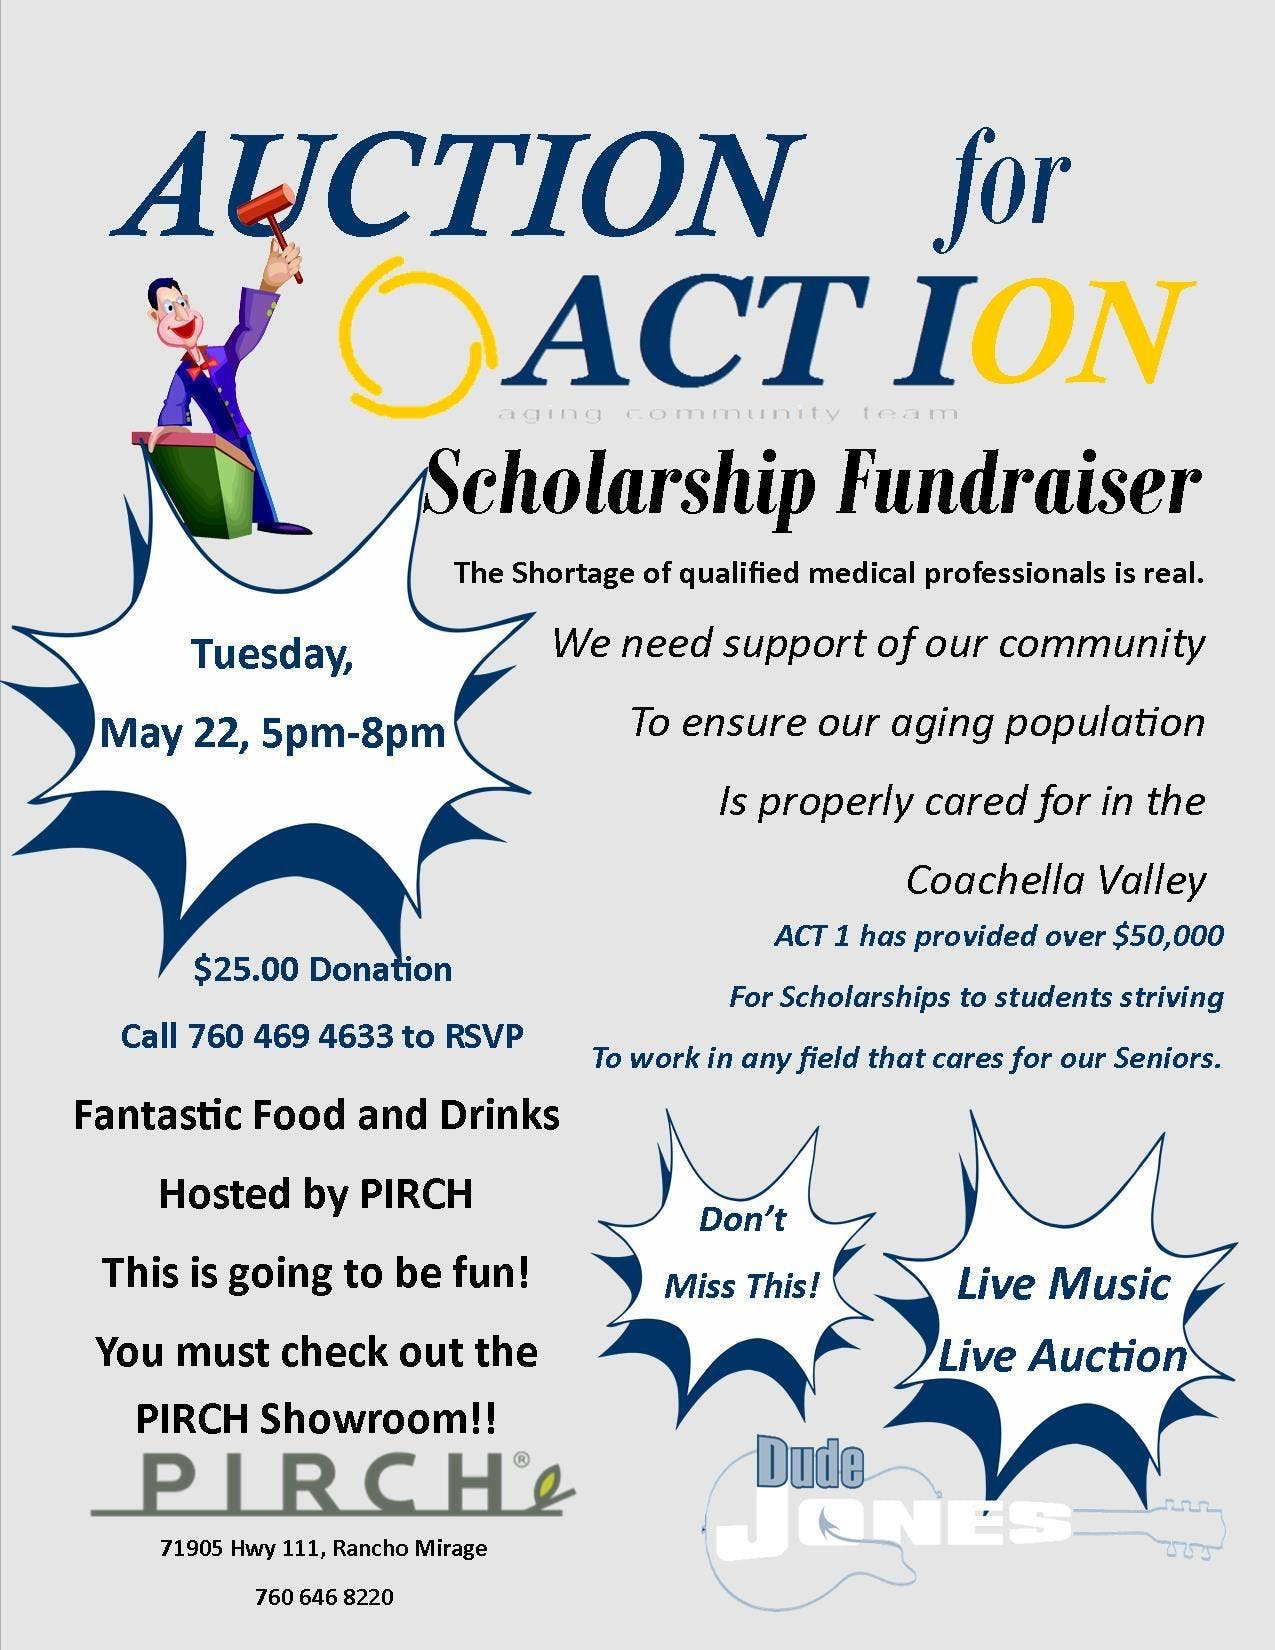 Auction for Action Scholarship Fundraiser